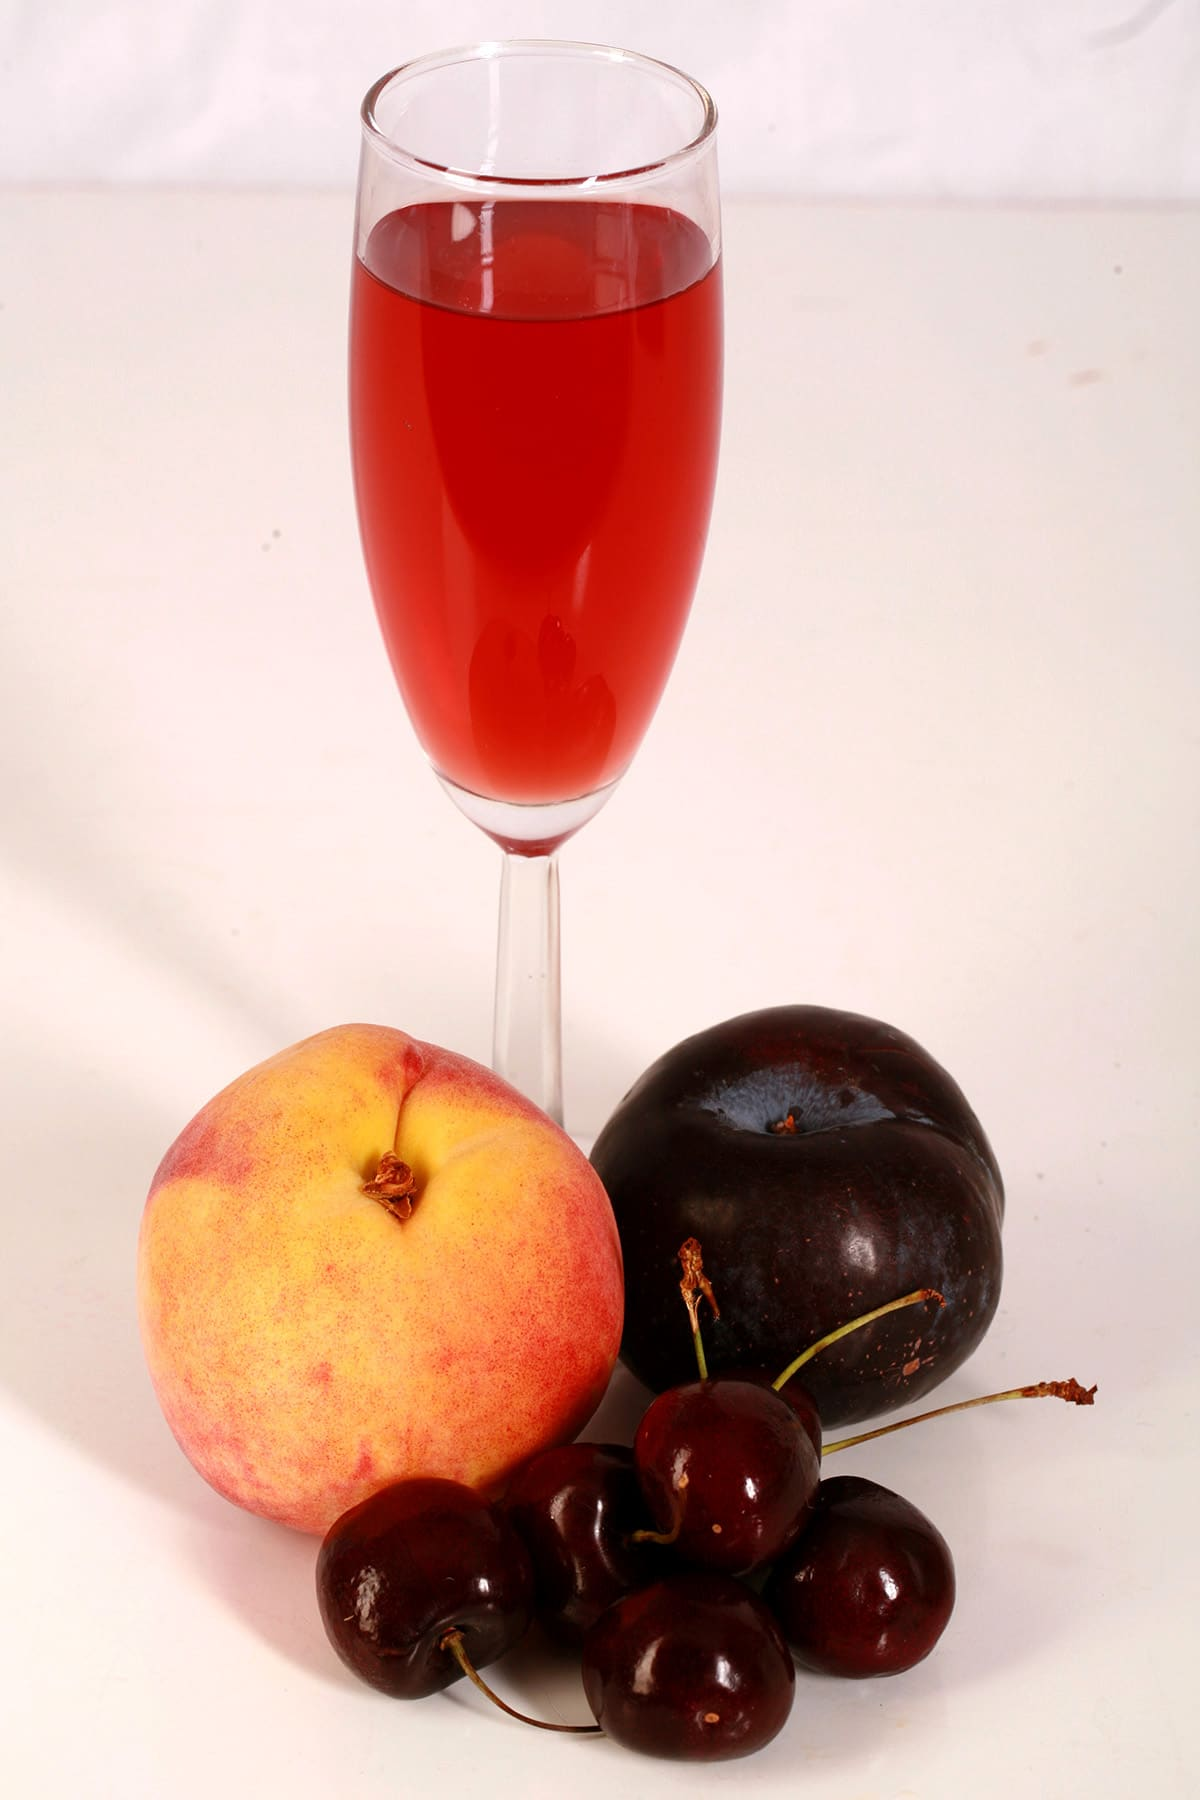 A tall glass of fruit punch-coloured stone fruit wine, next to a peach, a plum, and a few cherries.